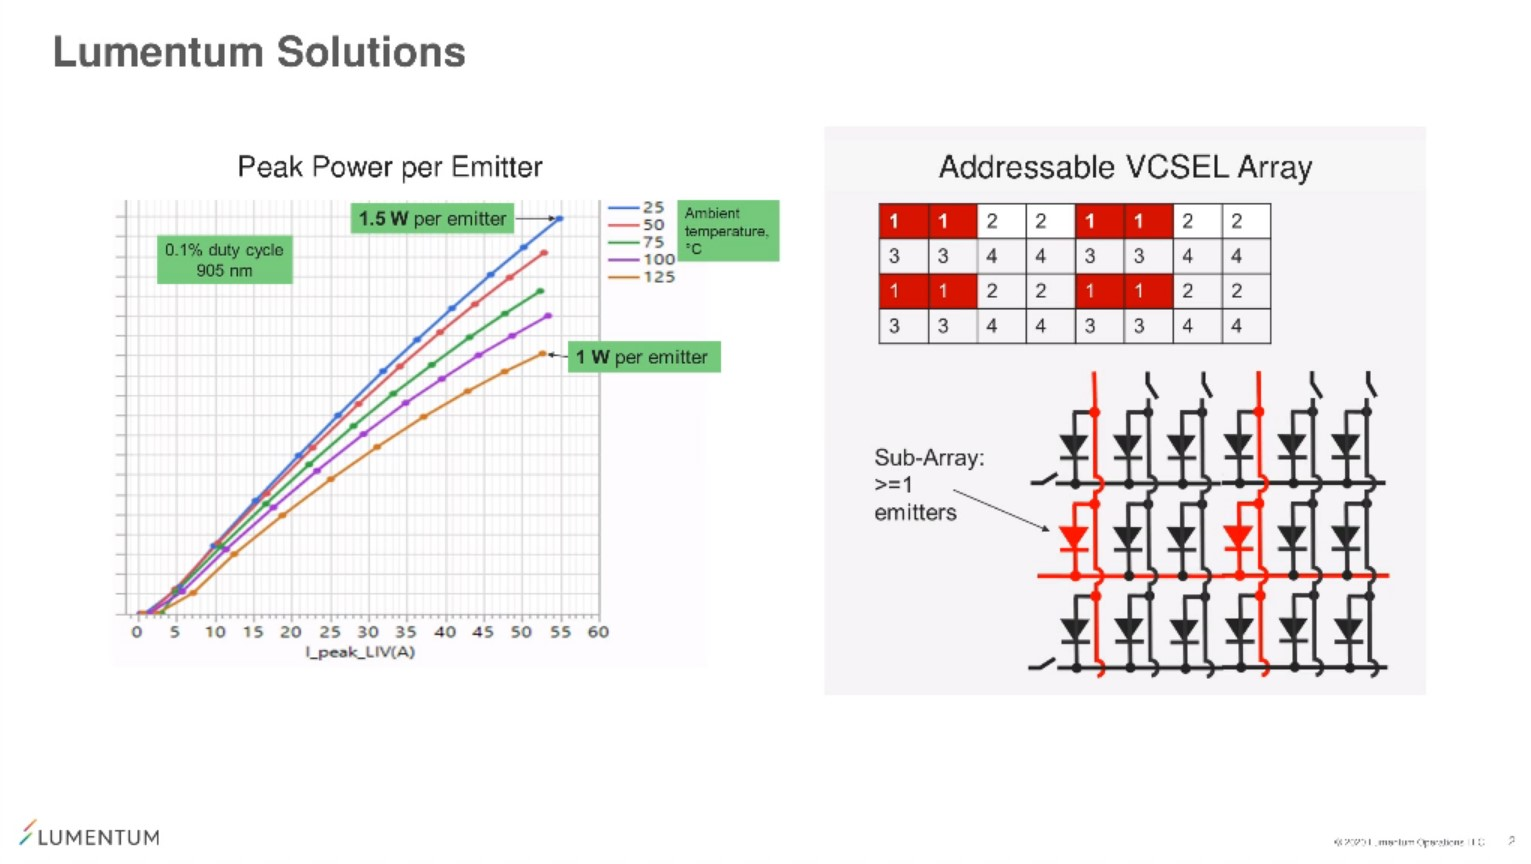 Discussion: Enabling Pure Solid State Scanning LiDAR by Leveraging High Volume, Scalable, Highly Reliable VCSEL Arrays